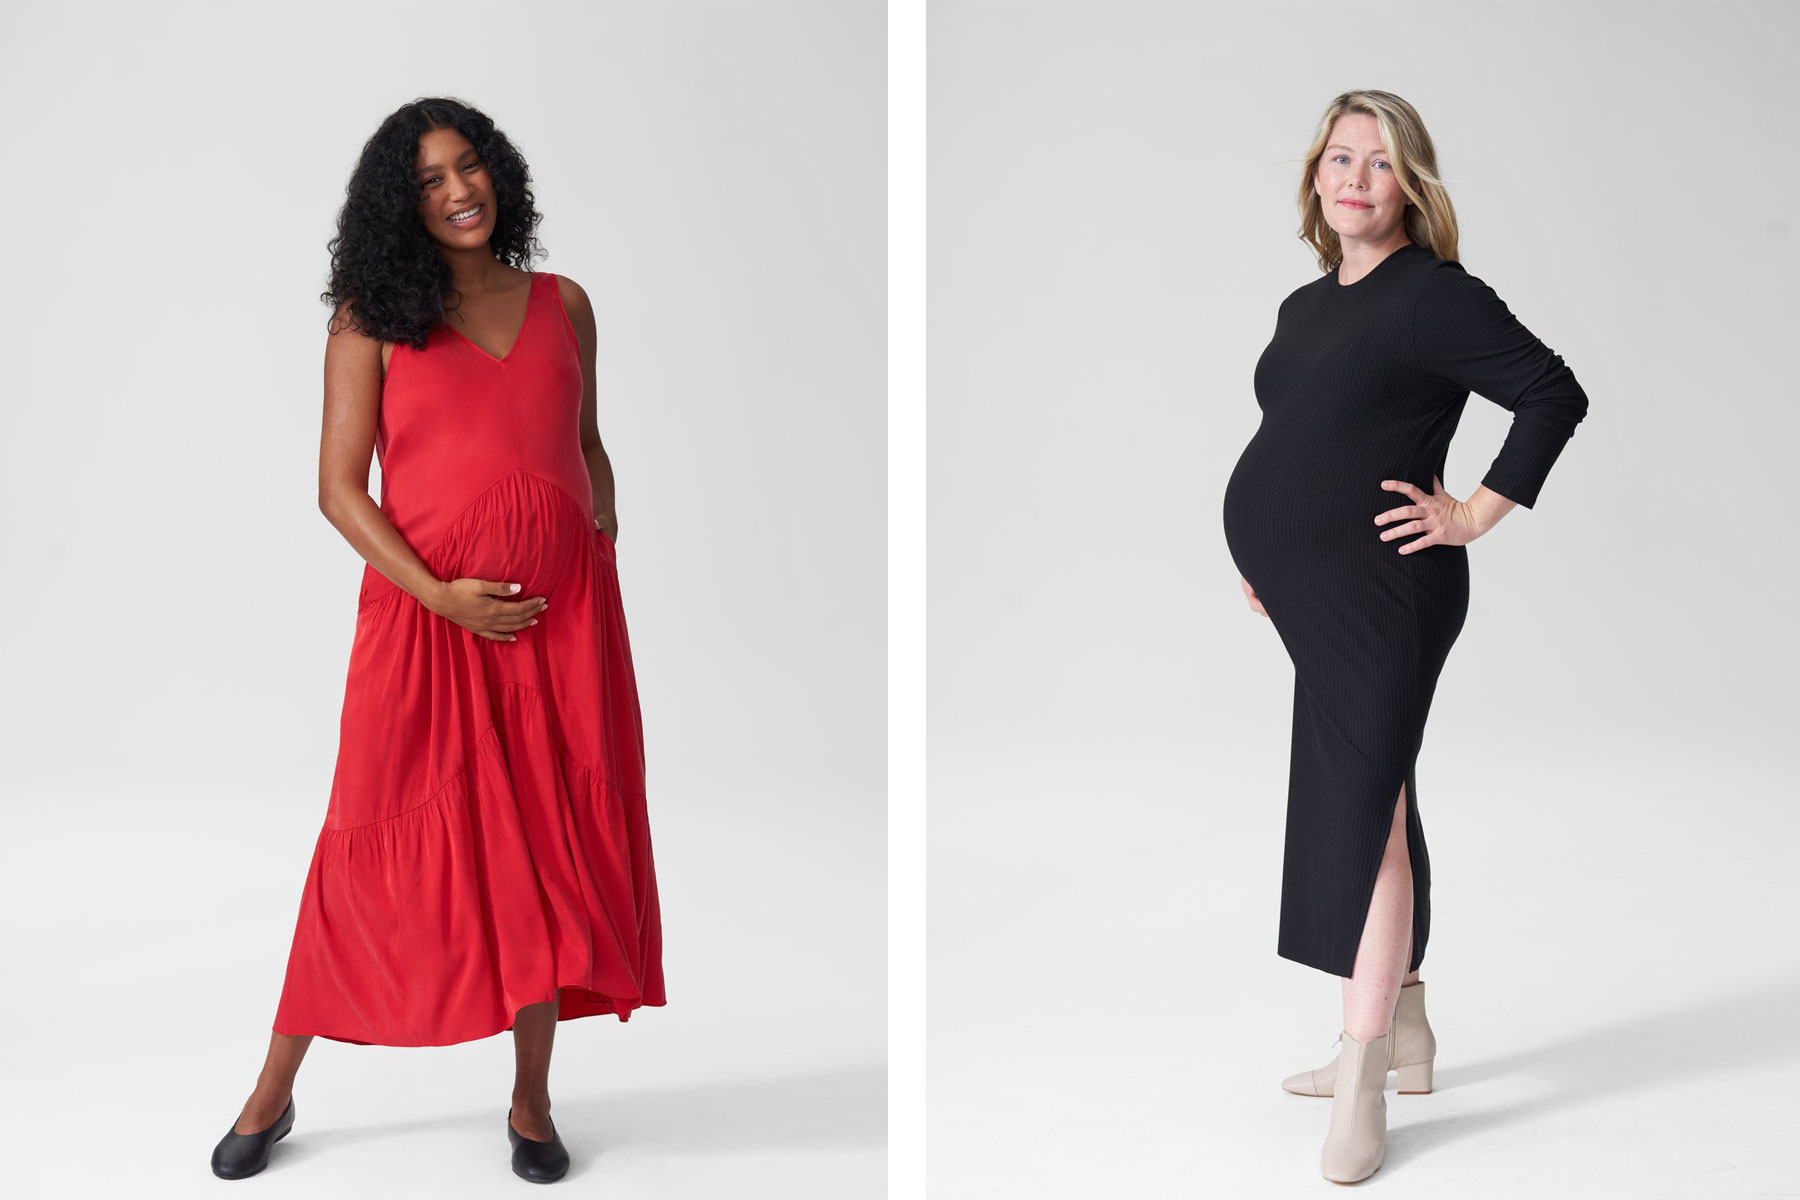 Red and black maternity dresses